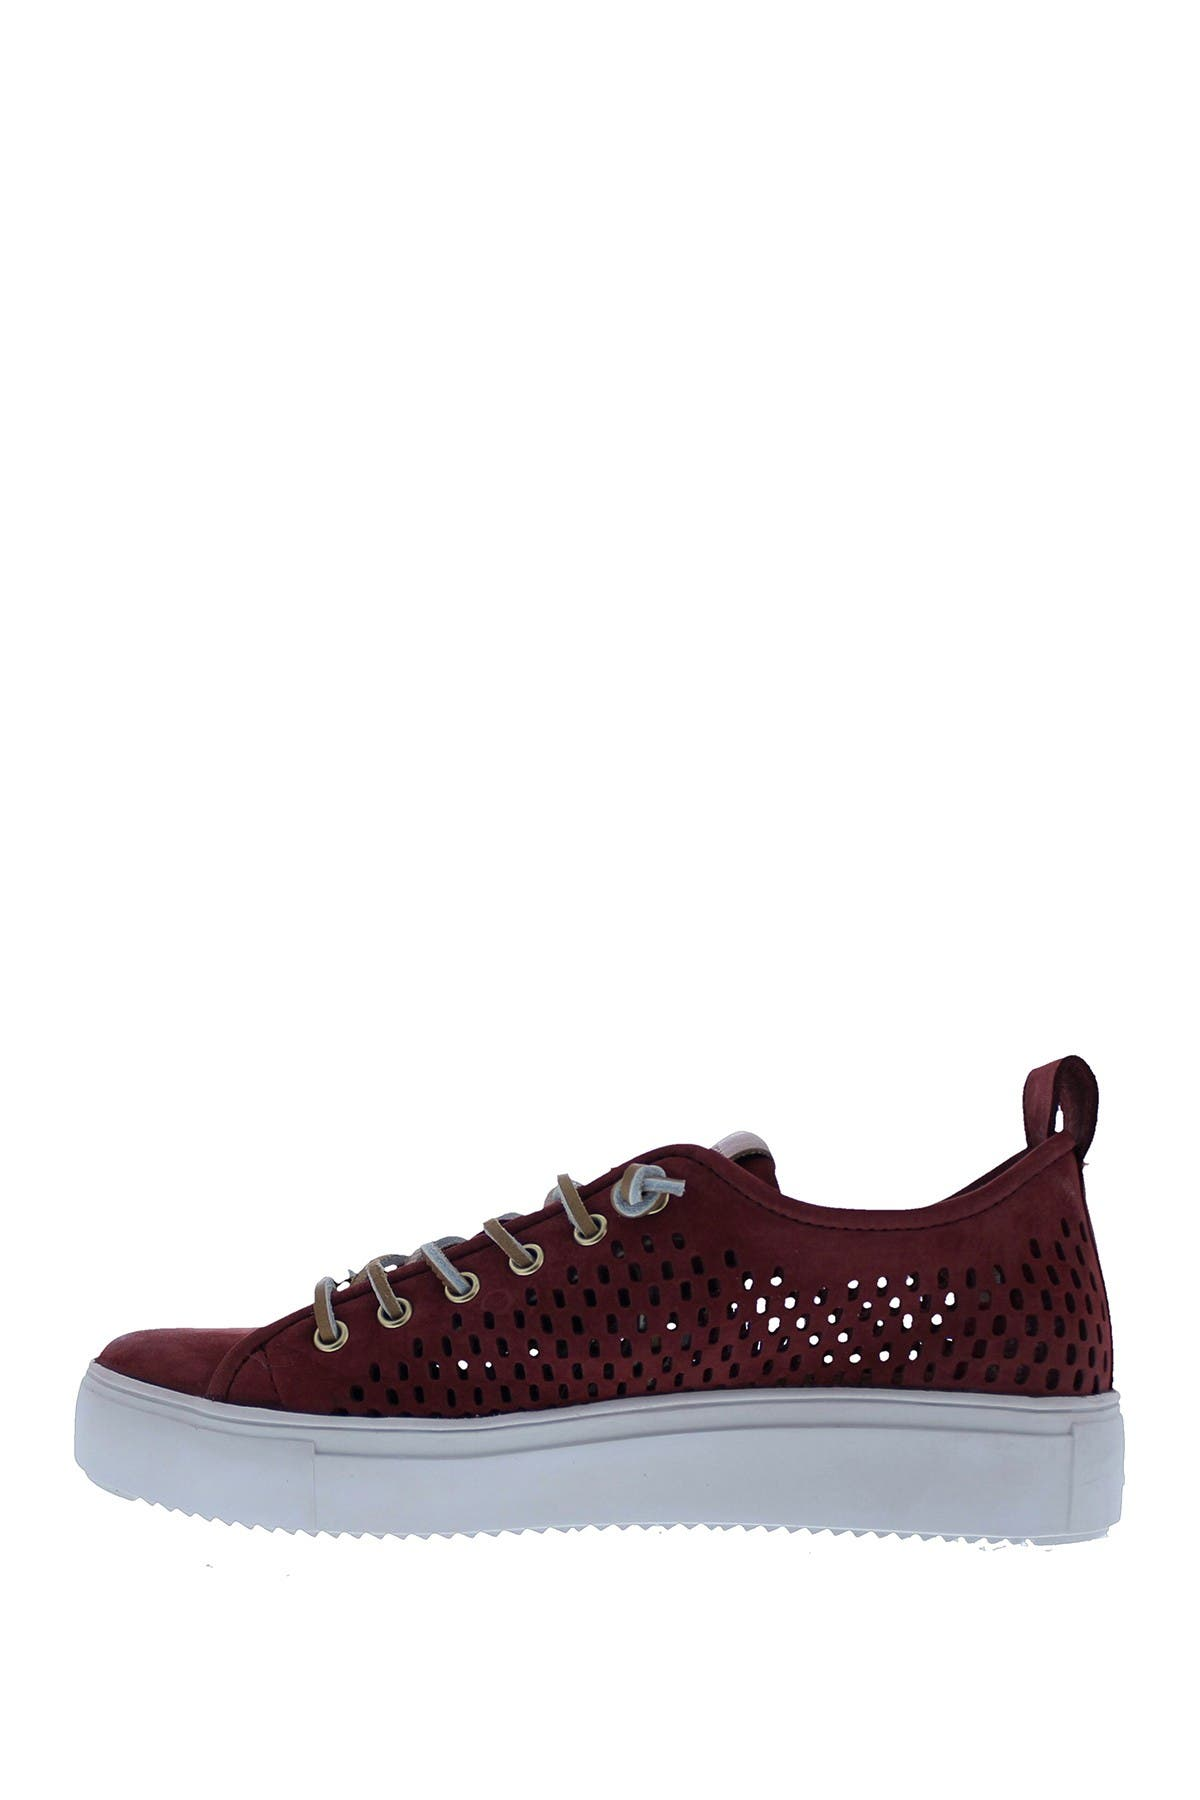 Image of Blackstone Perforated Leather Low Top Sneaker